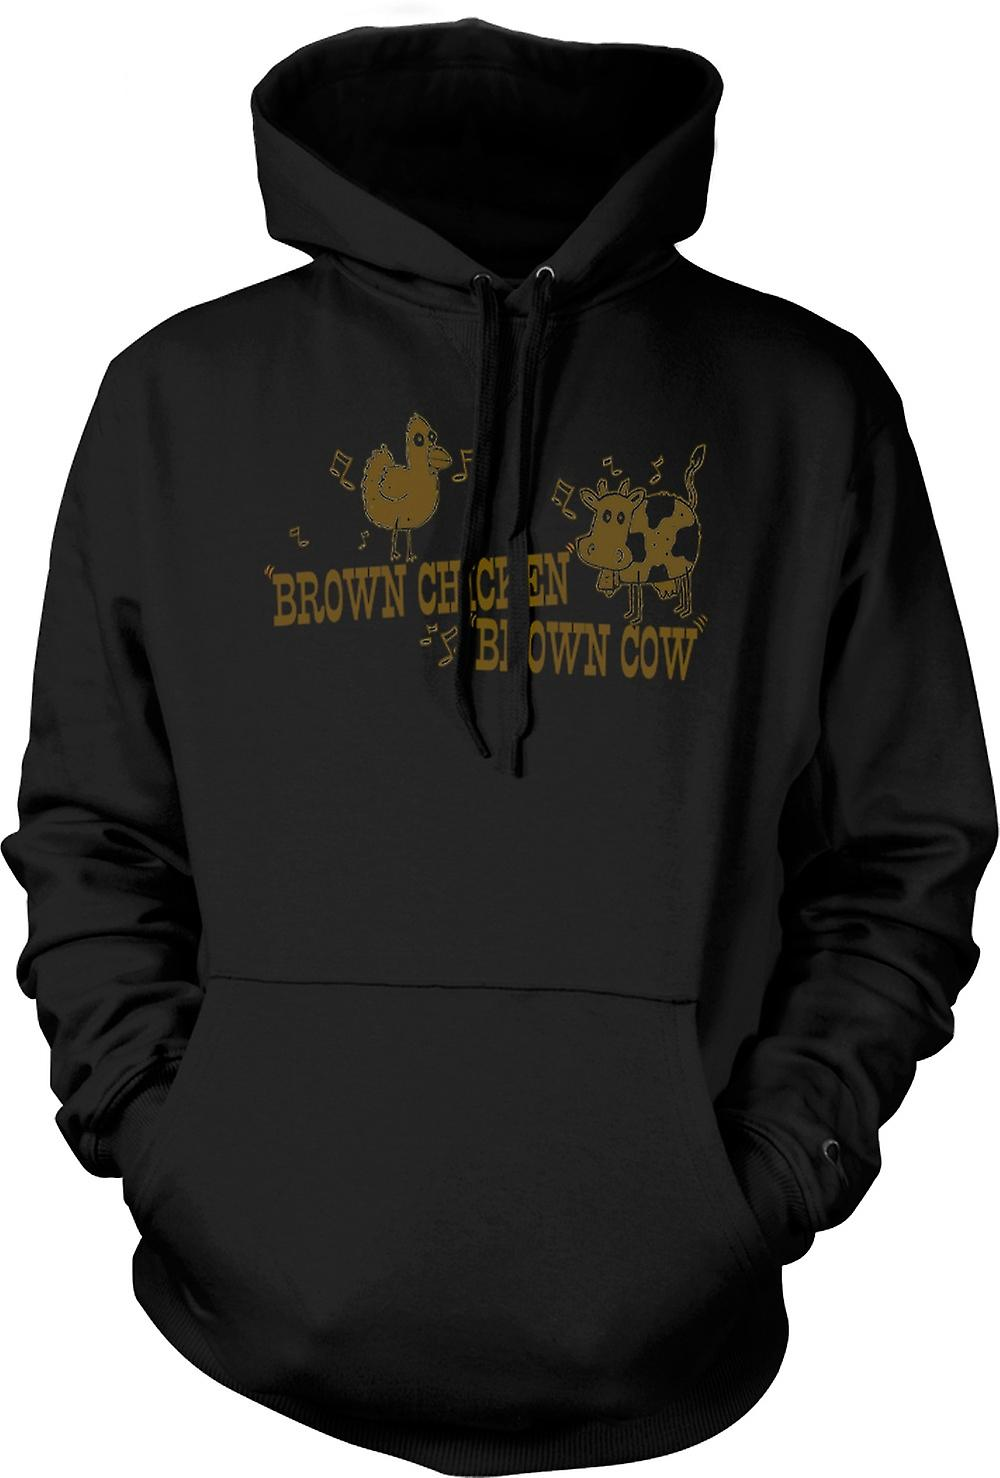 Mens Hoodie - Brown Chicken, Brown Cow - Quote